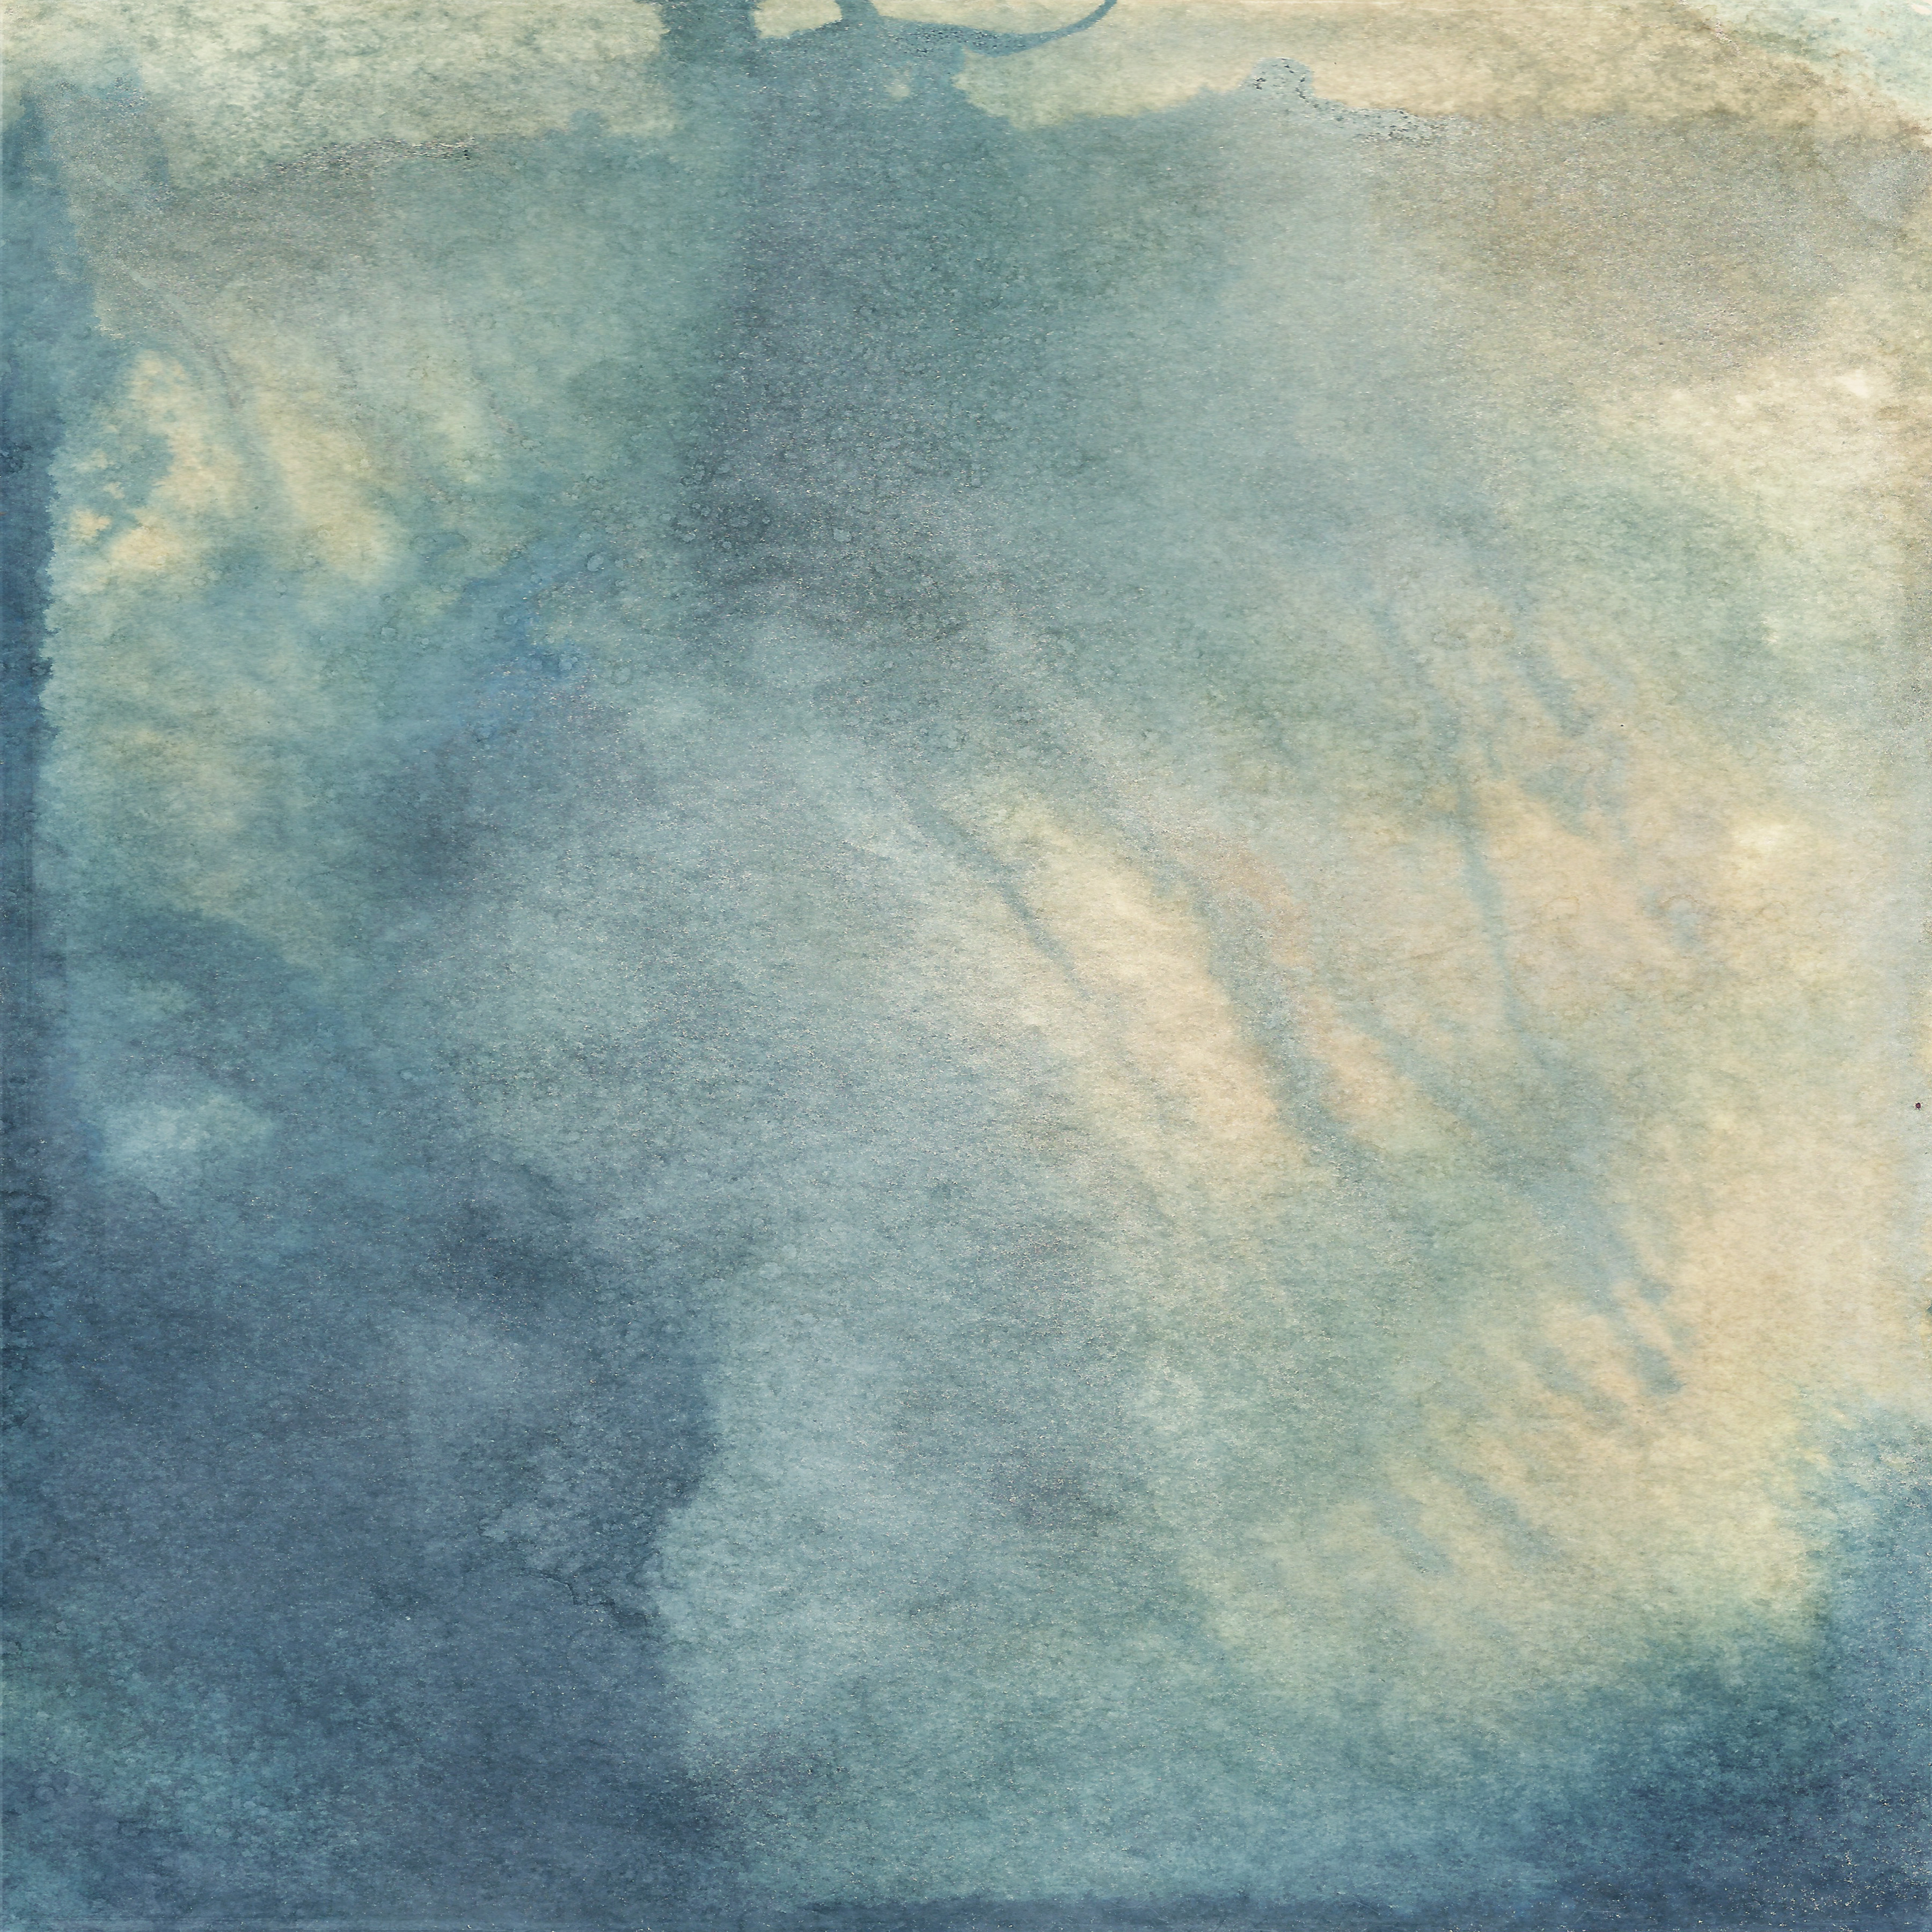 Paints Fine Art Textures, Abstract, Simplicity, Glamour, Graphic, HQ Photo